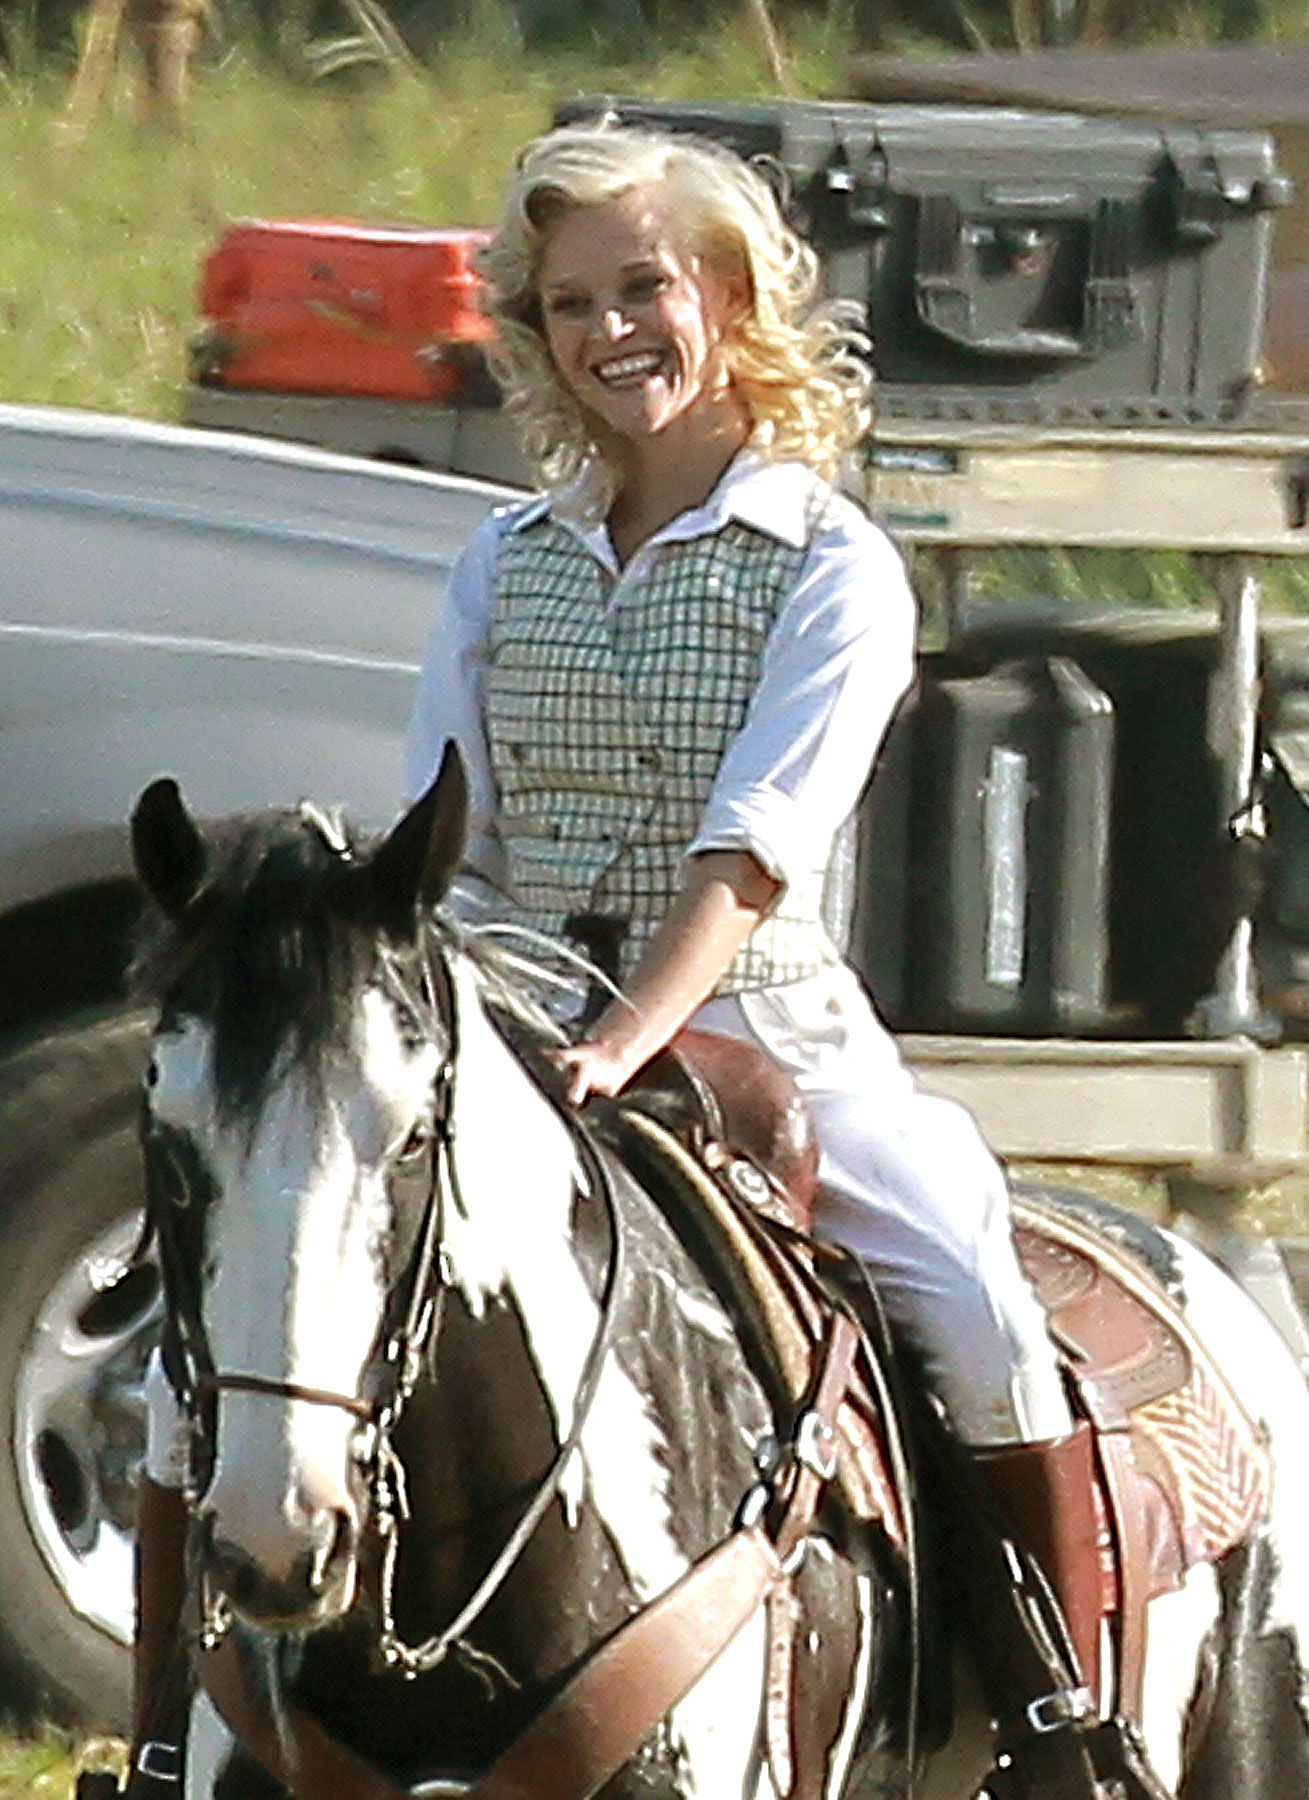 Reese Witherspoon Horses Around on 'Water for Elephants' Set (PHOTOS)